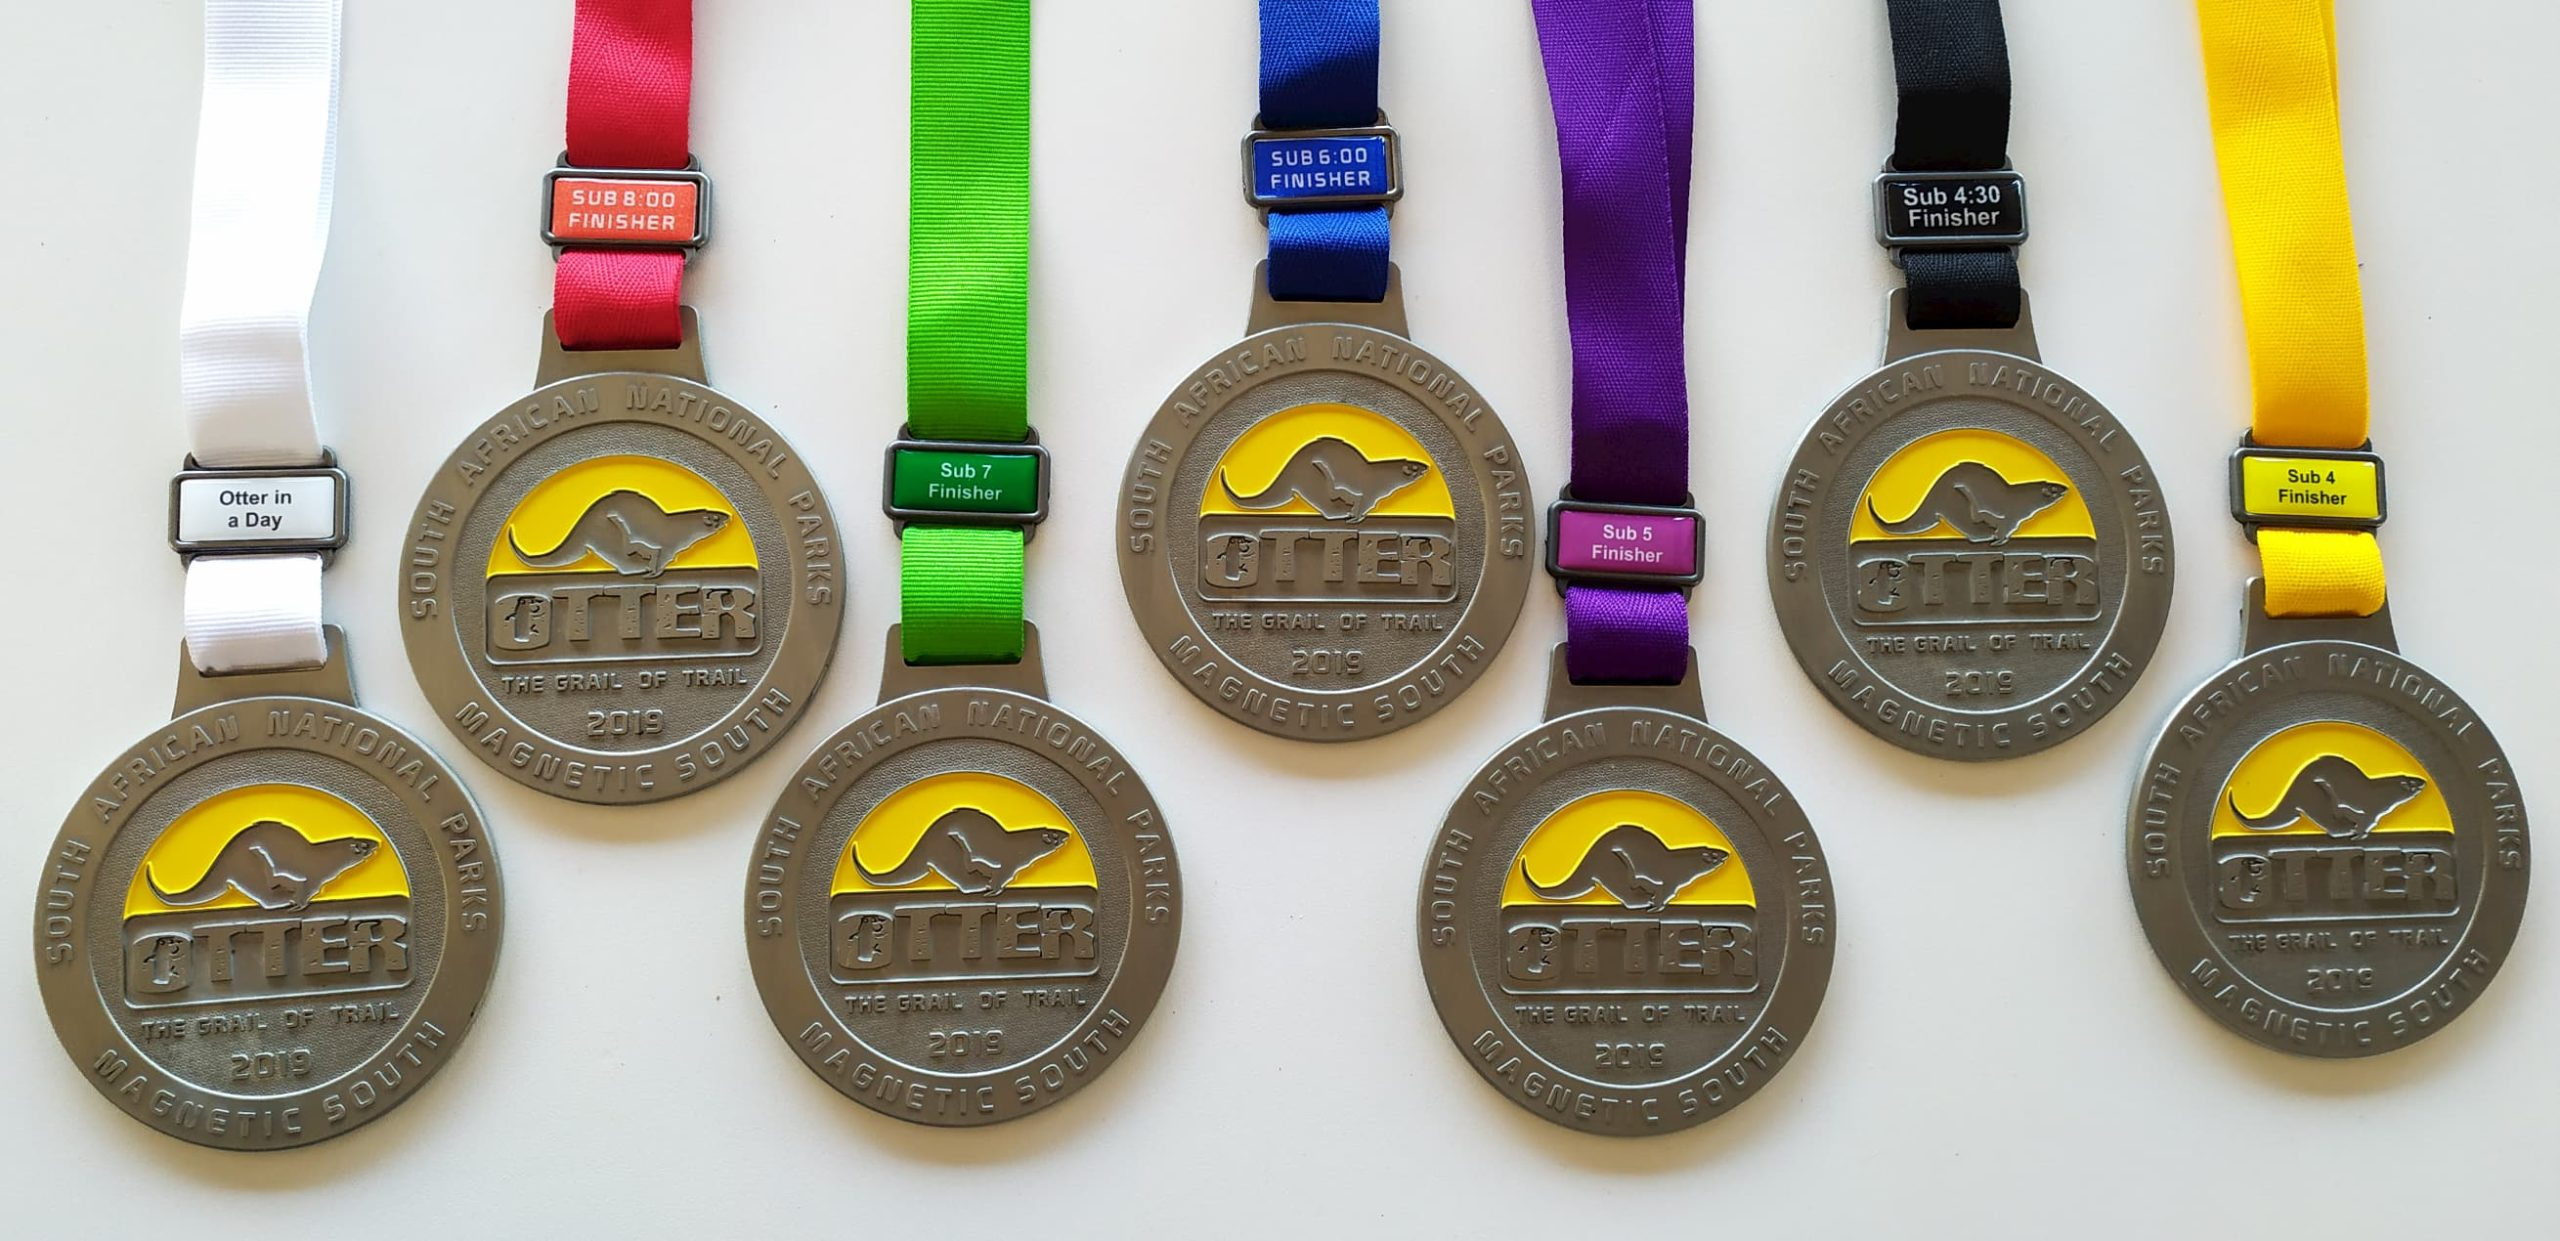 OTTER Grail of Trail Medals